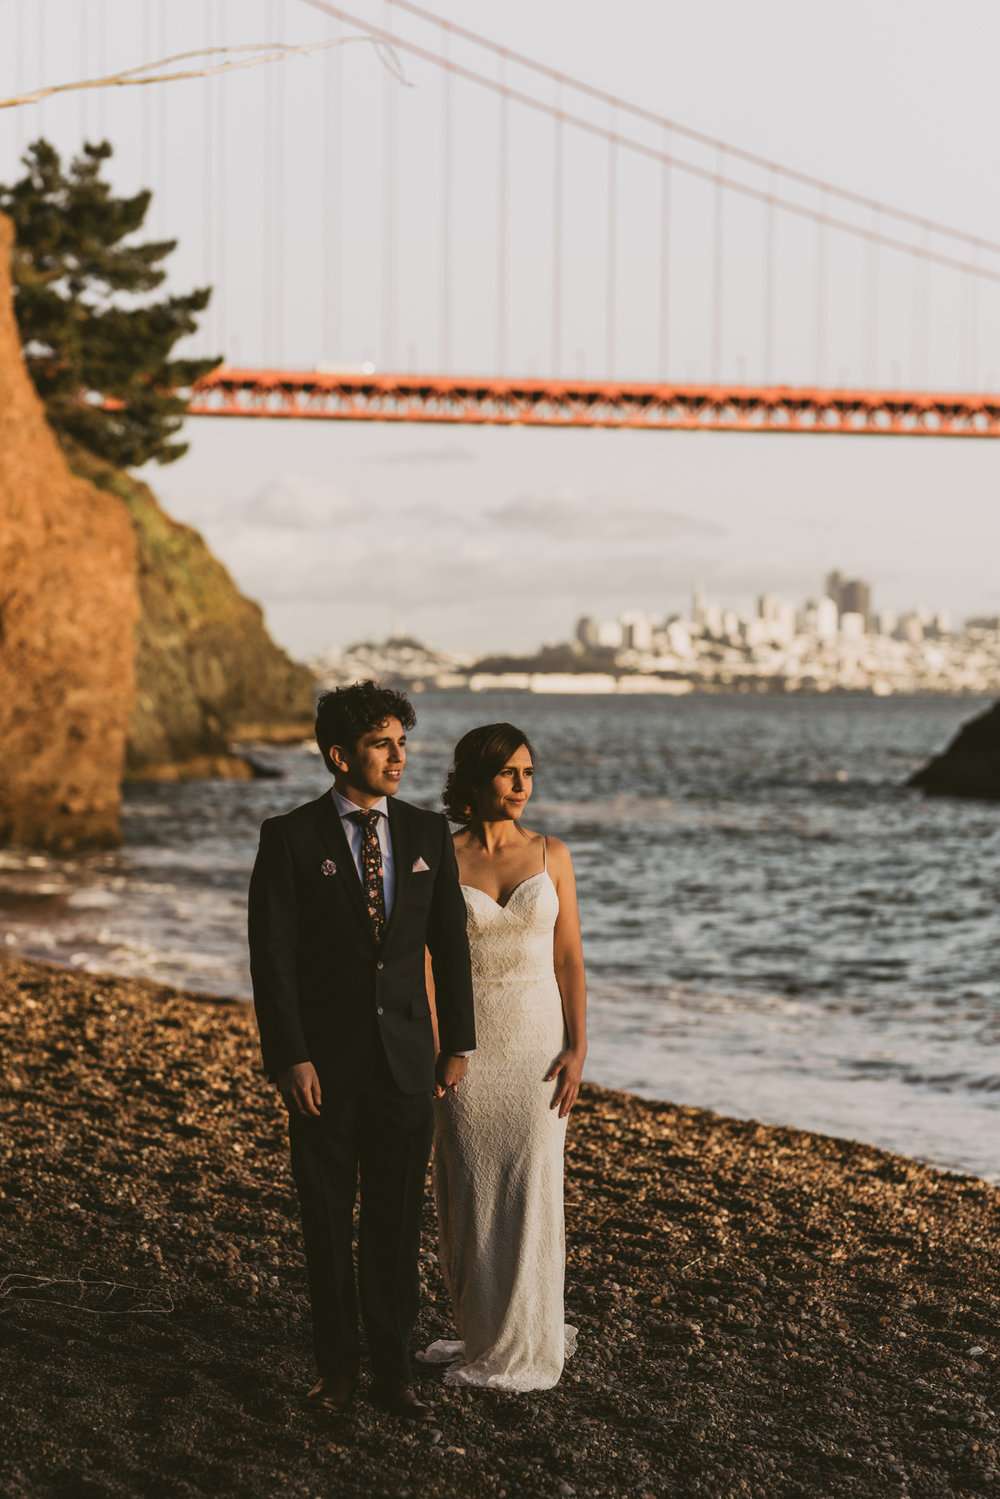 ©Isaiah + Taylor Photography - San Fransisco Elopement, Golden Gate Bridge-80.jpg